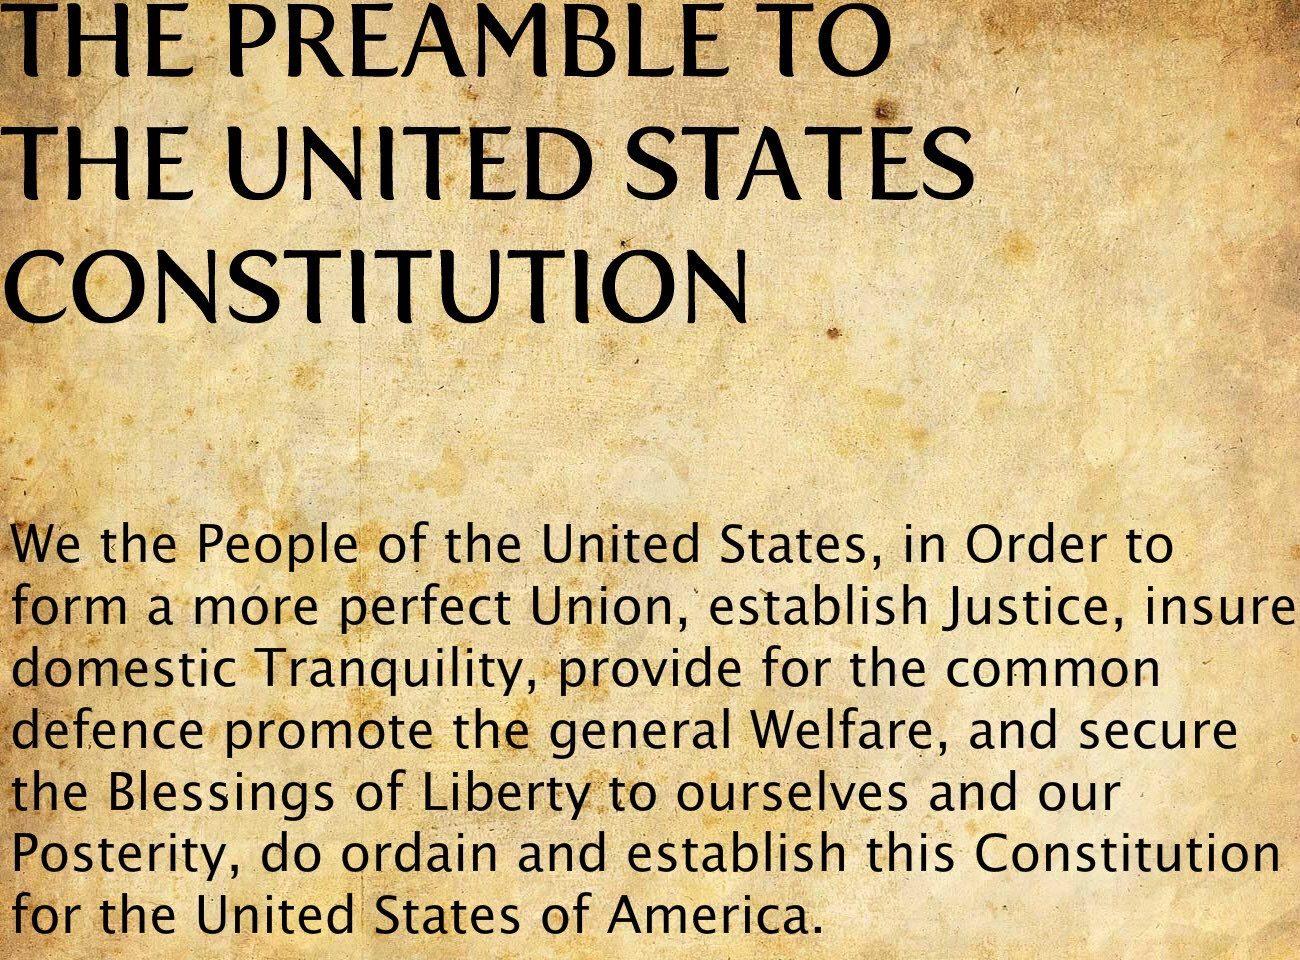 a discussion on the importance of the preamble to the constitution to the united states Note from the constitution committee: the following is the proposal for an updated constitution that will be submitted to the convention by the constitution committee.